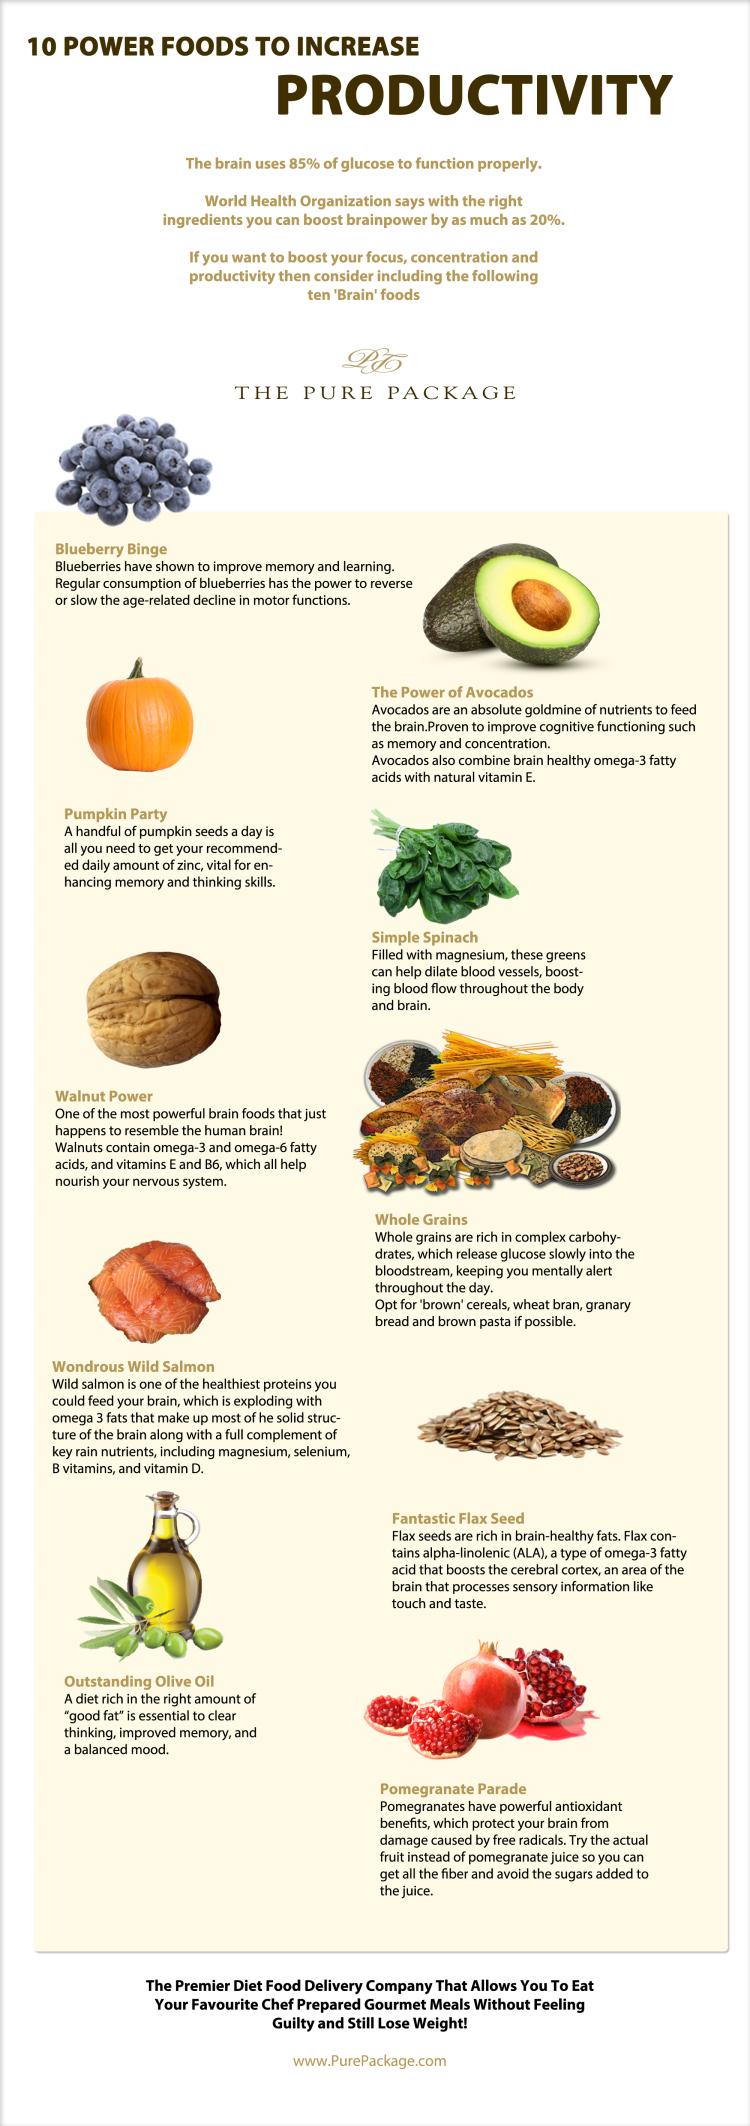 Power Foods That Increase Productivity